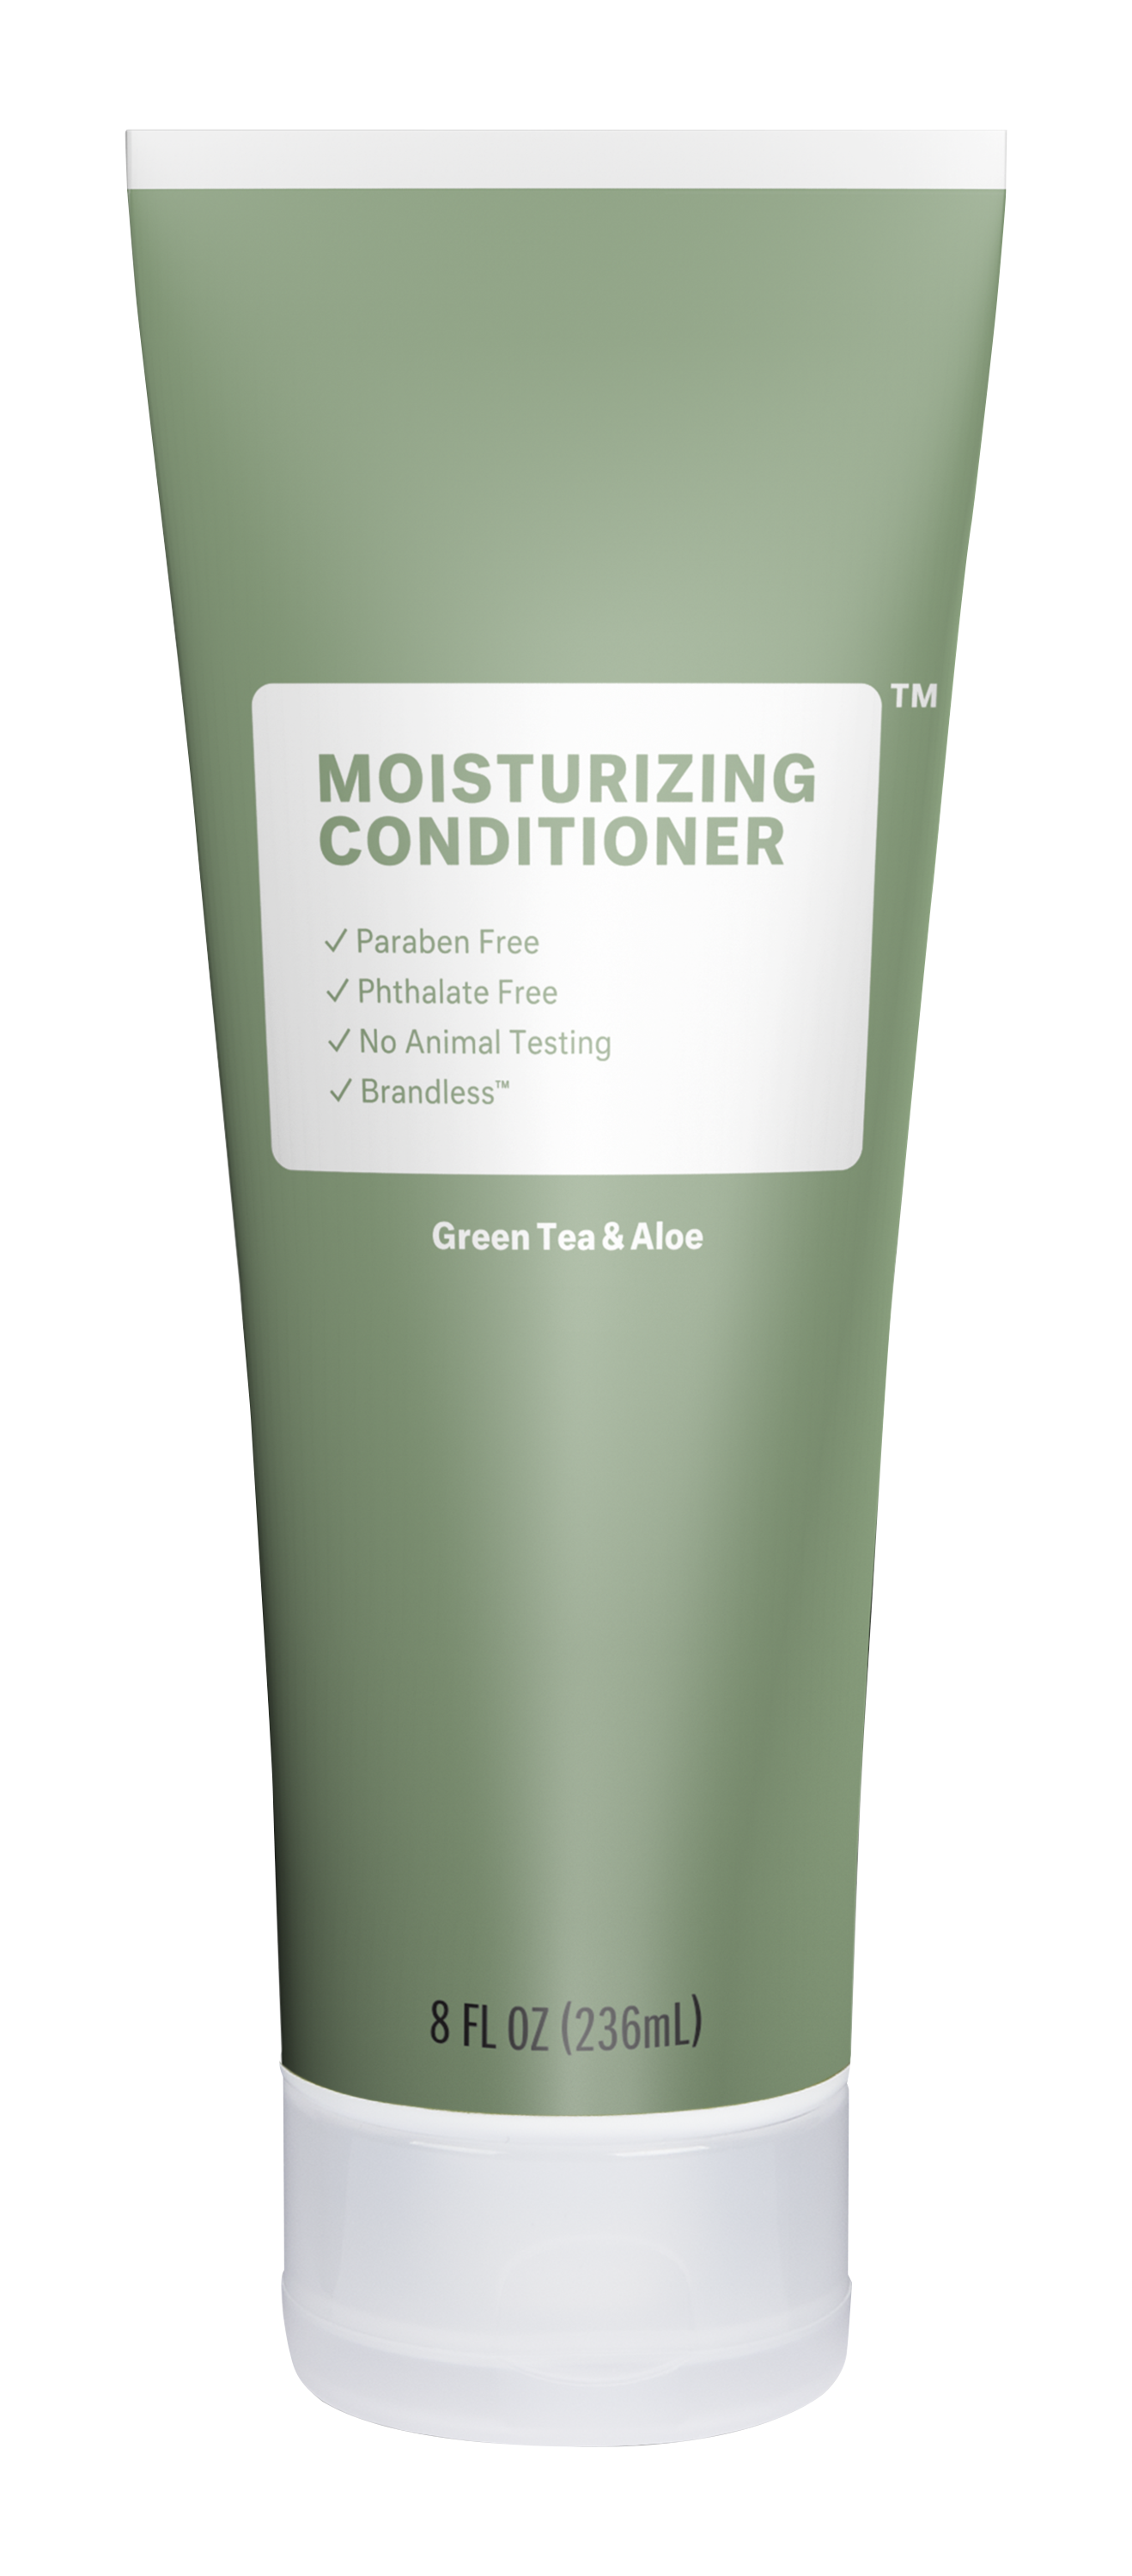 Brandless: Moisturizing Conditioner, Green Tea & Aloe